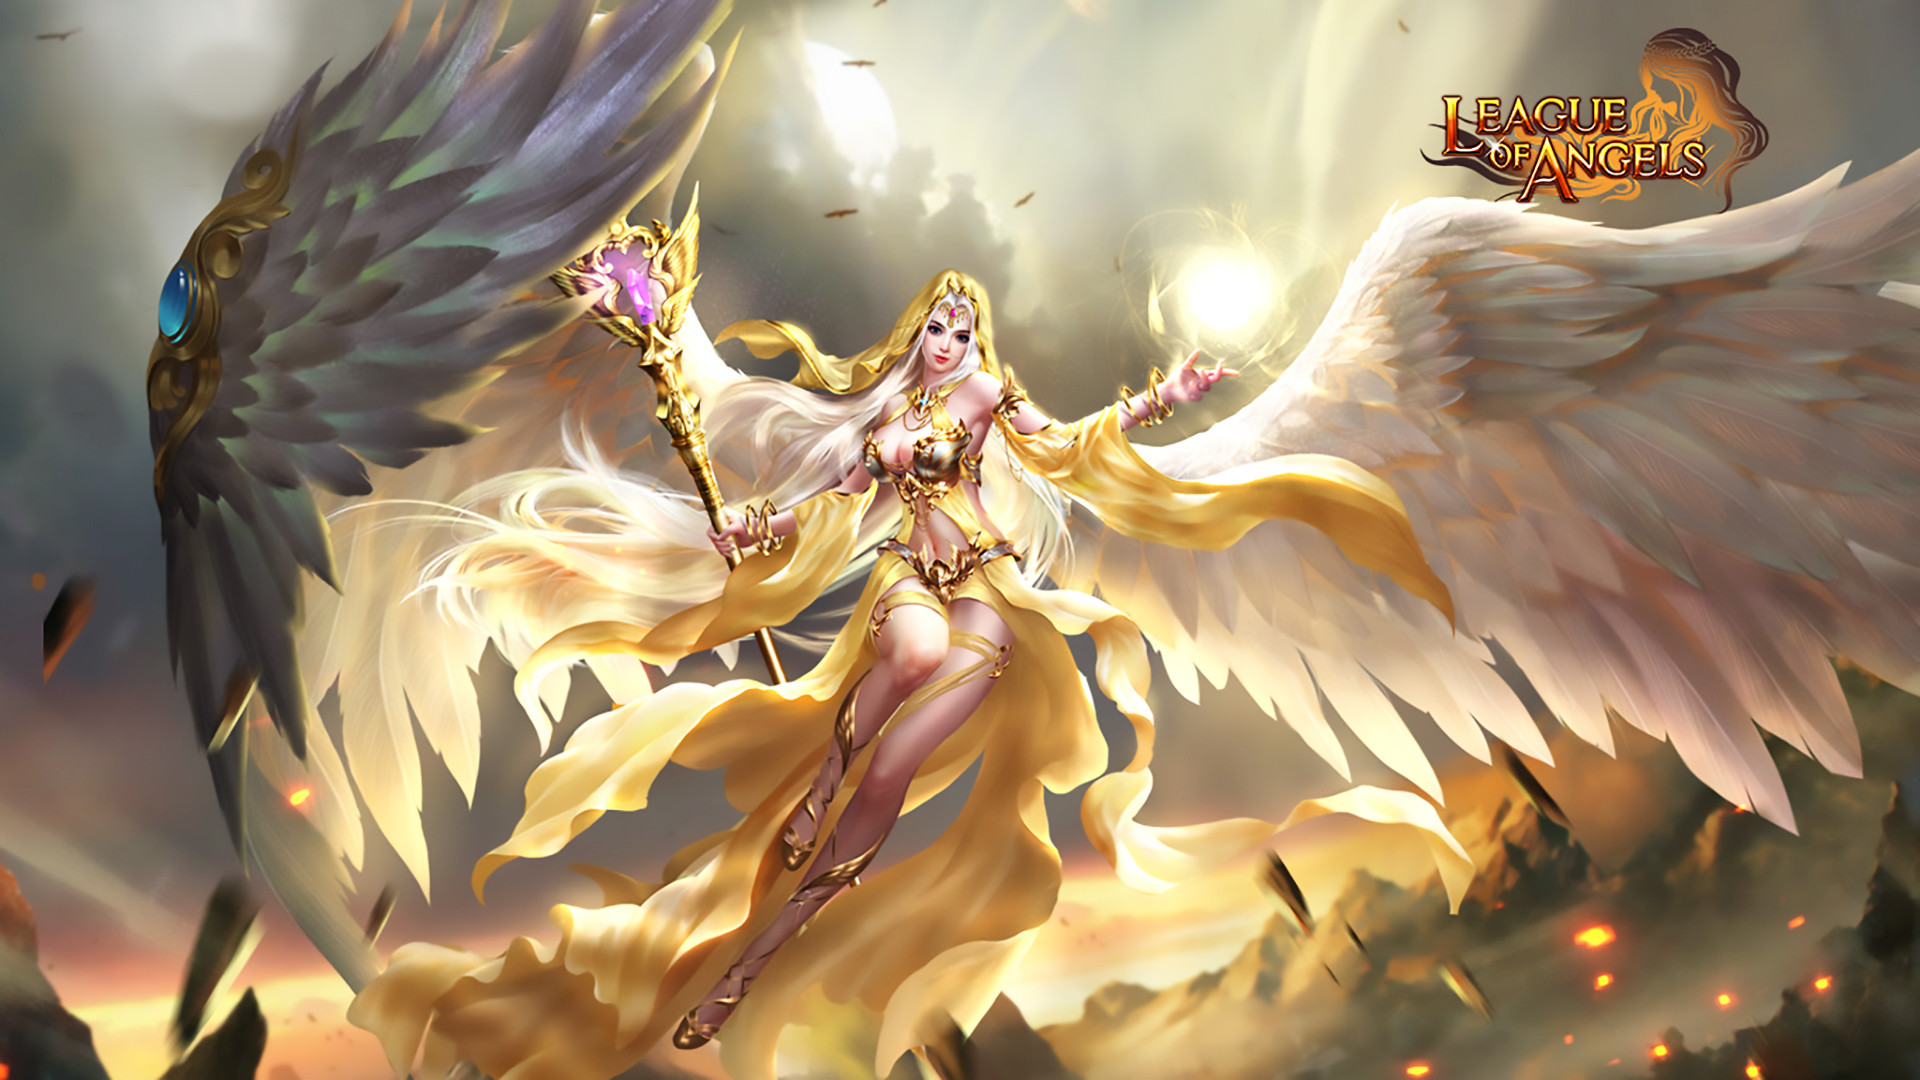 League of Angels Wallpaper (78+ images)  League of Angel...